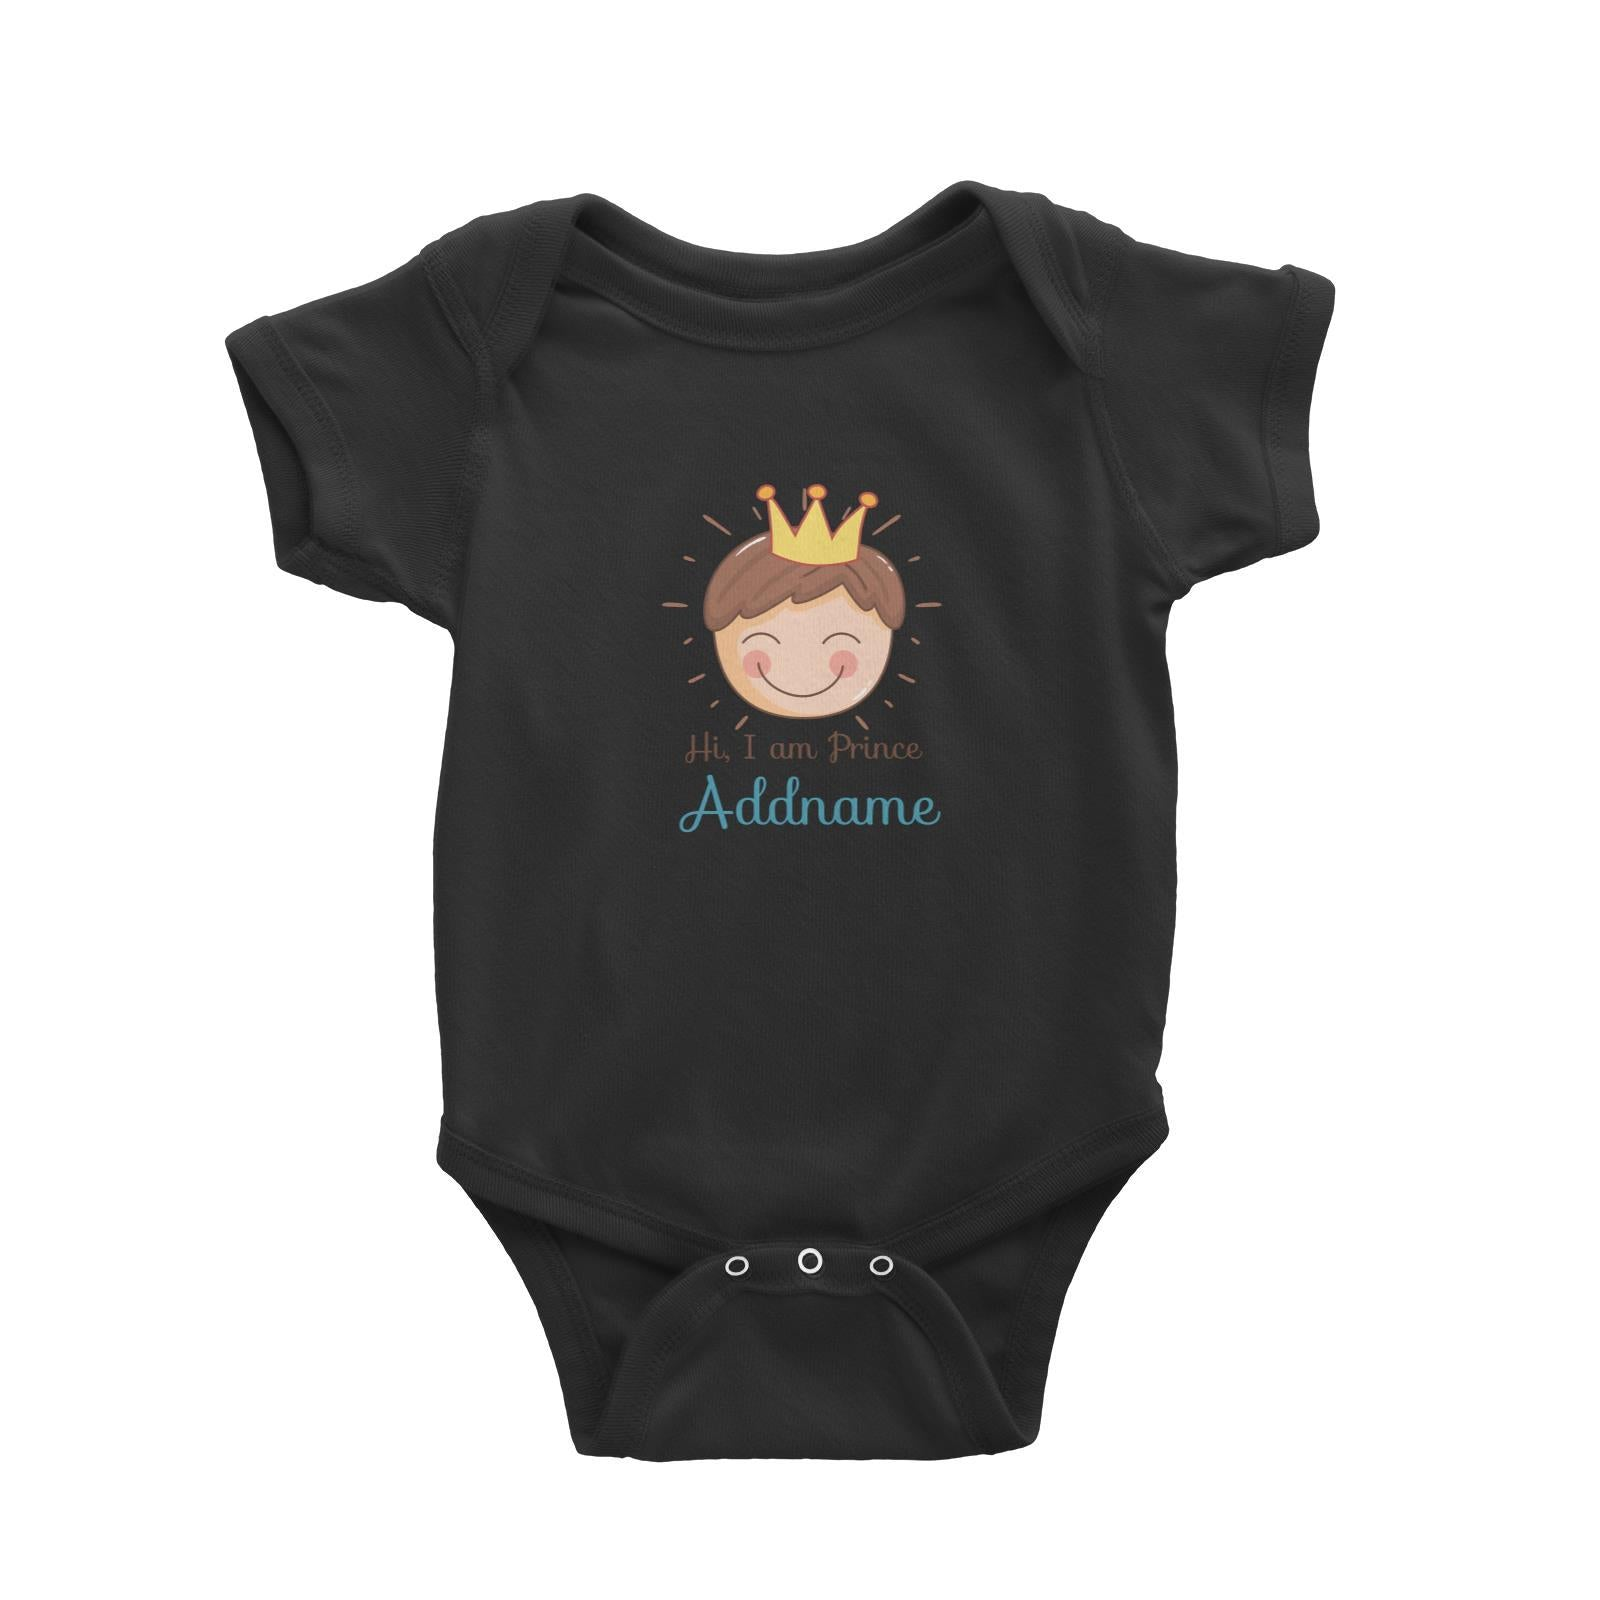 Babywears.my Cute Prince with Crown Hi I Am Prince Addname T-Shirt Personalizable Designs Newborn For Boys